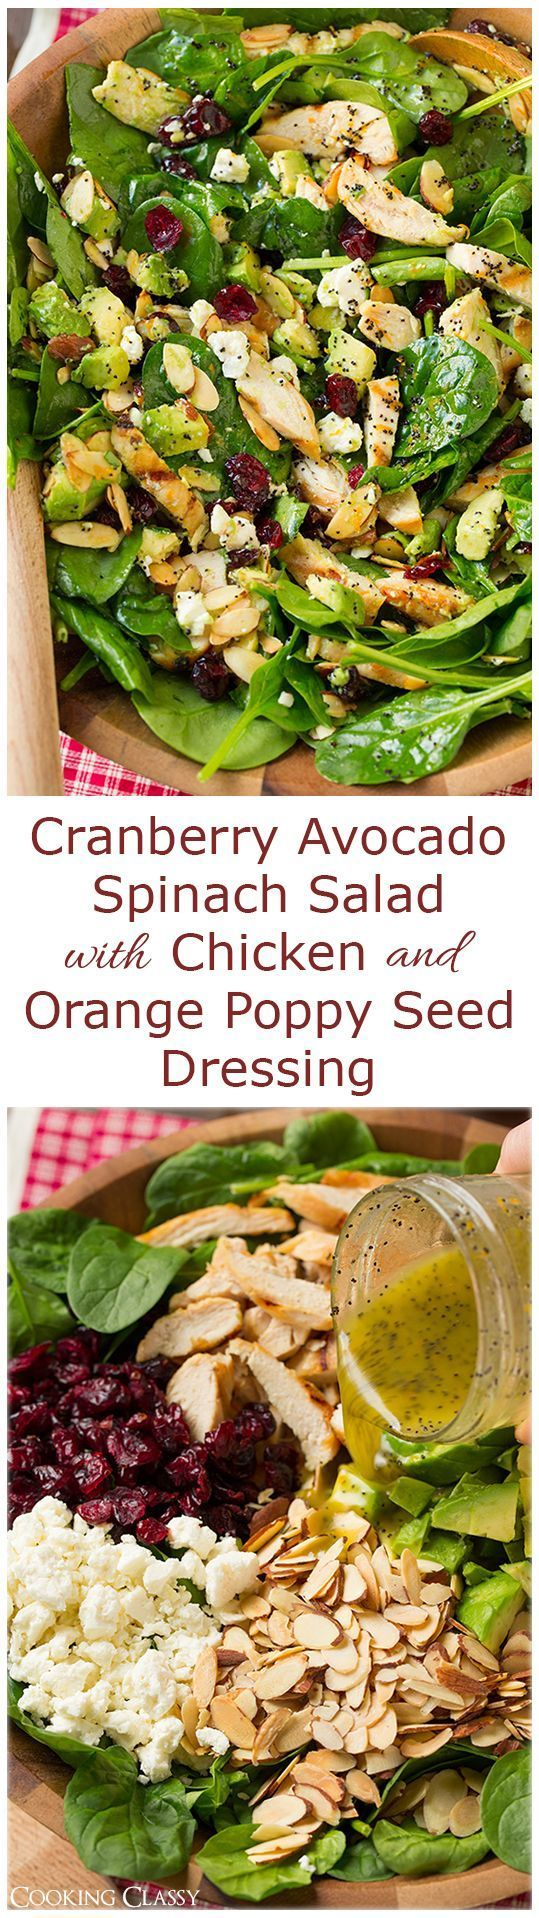 "Recipes for Salads Cranberry Avocado Spinach Salad with Chicken and Orange Poppy Seed Dressing ""- this flavorful salad is one of my new favorites! LOVED it!!"" Dressing: ""1/4 cup olive oil 1/4 cup canola oil 2 tsp orange zest 1/4 cup fresh orange juice 2 Tbsp fresh lemon juice 2 Tbsp honey 2 tsp dijon mustard 1/4 tsp salt 1 Tbsp poppy seeds Salad: 1 lb chicken, grilled 9 oz baby spinach 2 medium avocados, cored and diced 1 cup crumbled feta 3/4 cup sliced almonds, toasted 3/4 cup d"